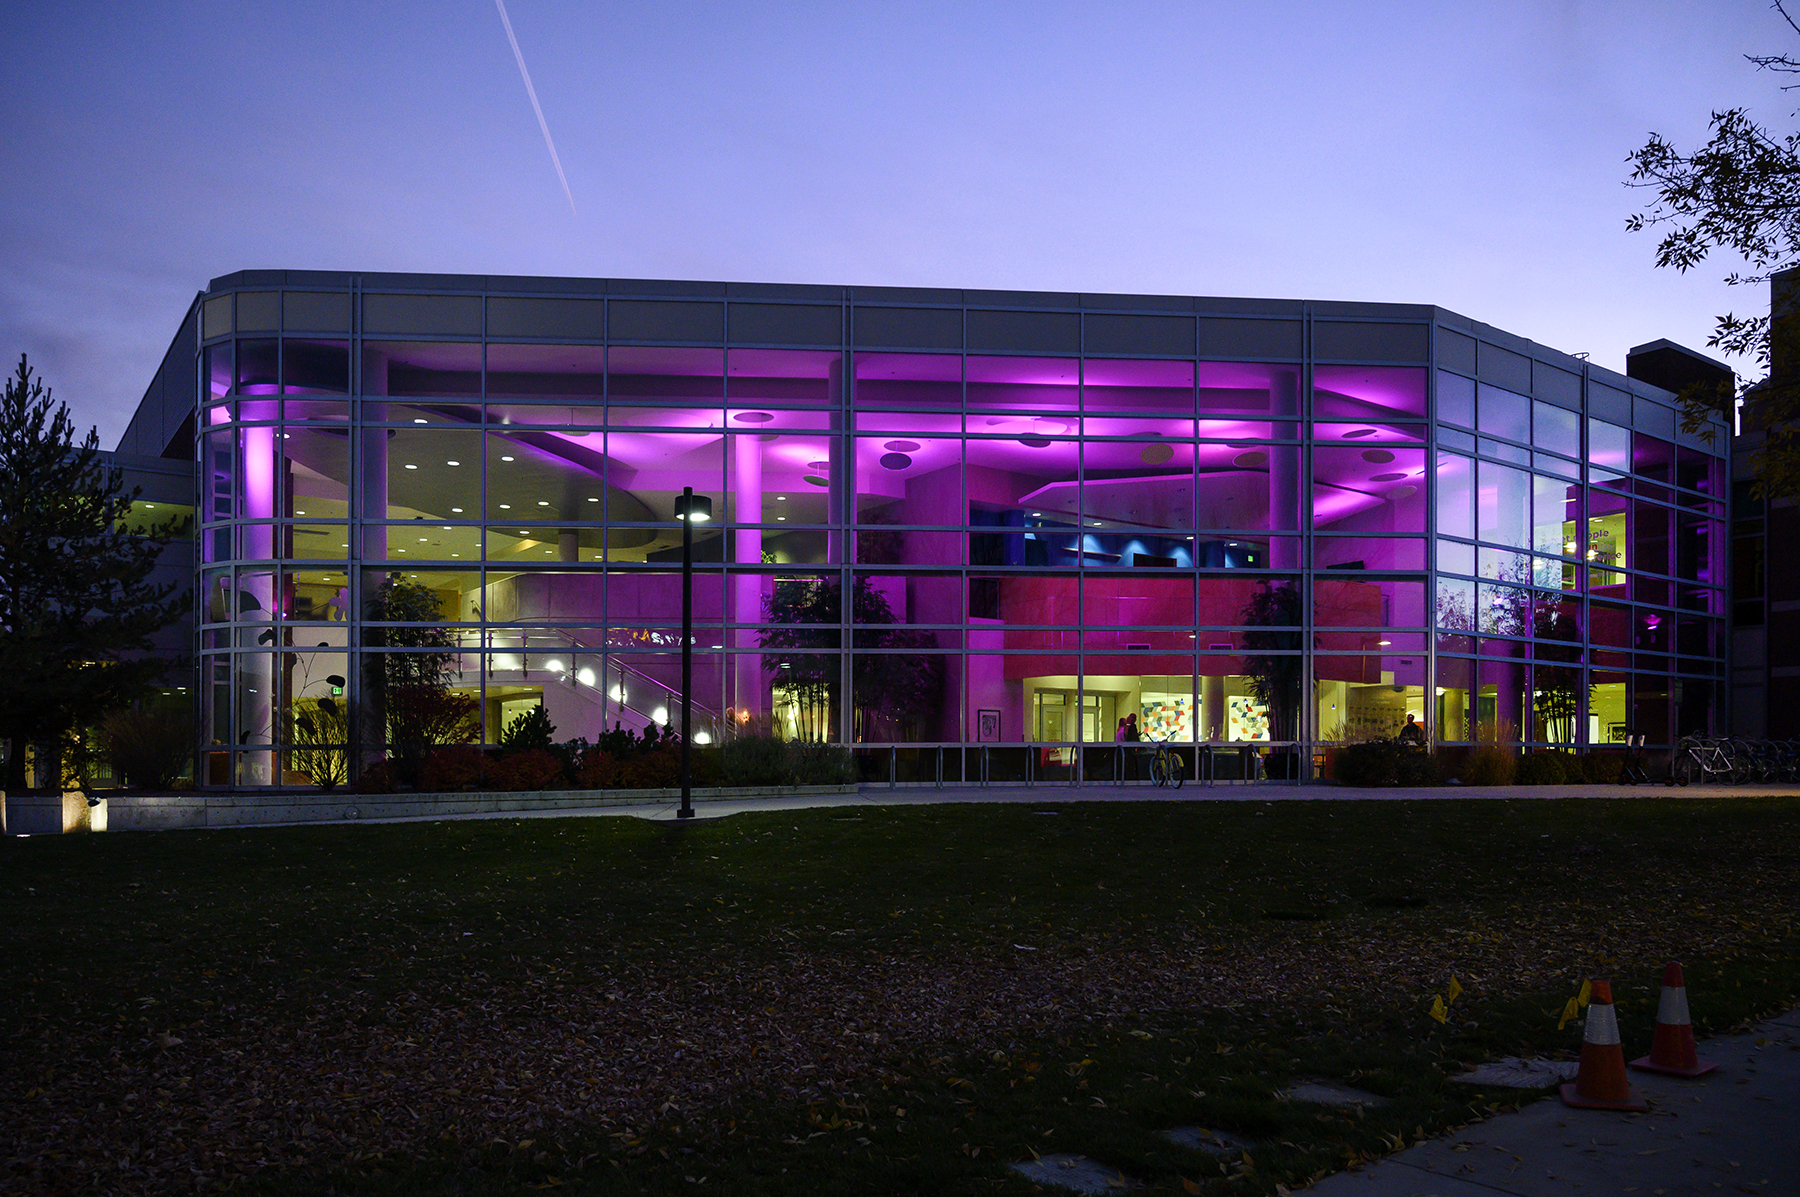 Purple lights illuminate the Student Union Building